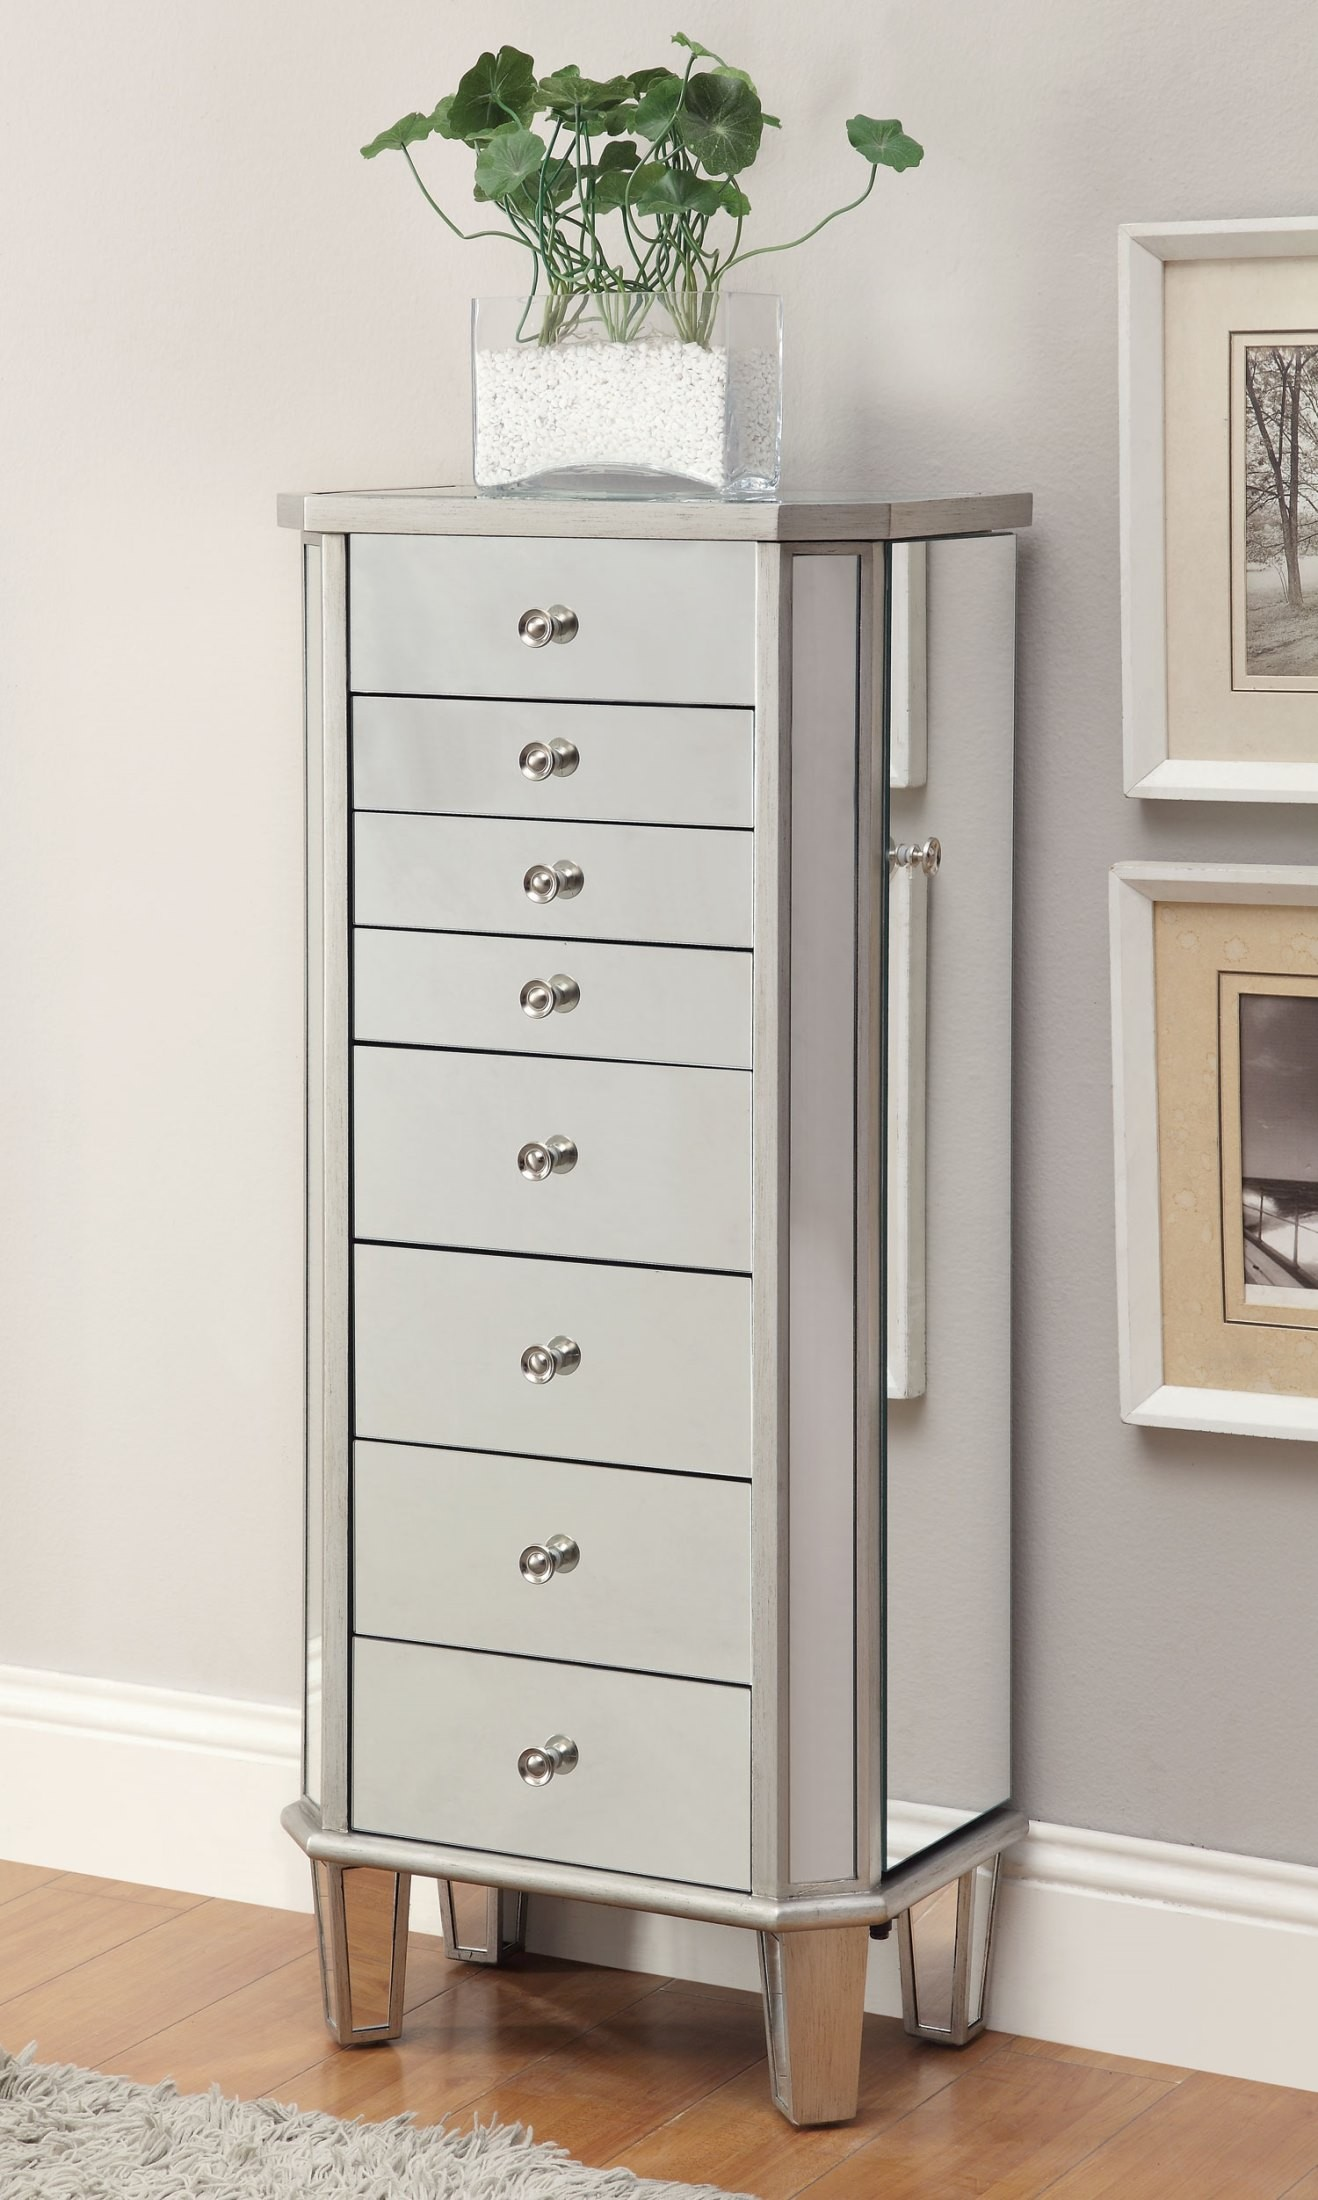 903808 Antique Silver Jewelry Armoire from Coaster (903808